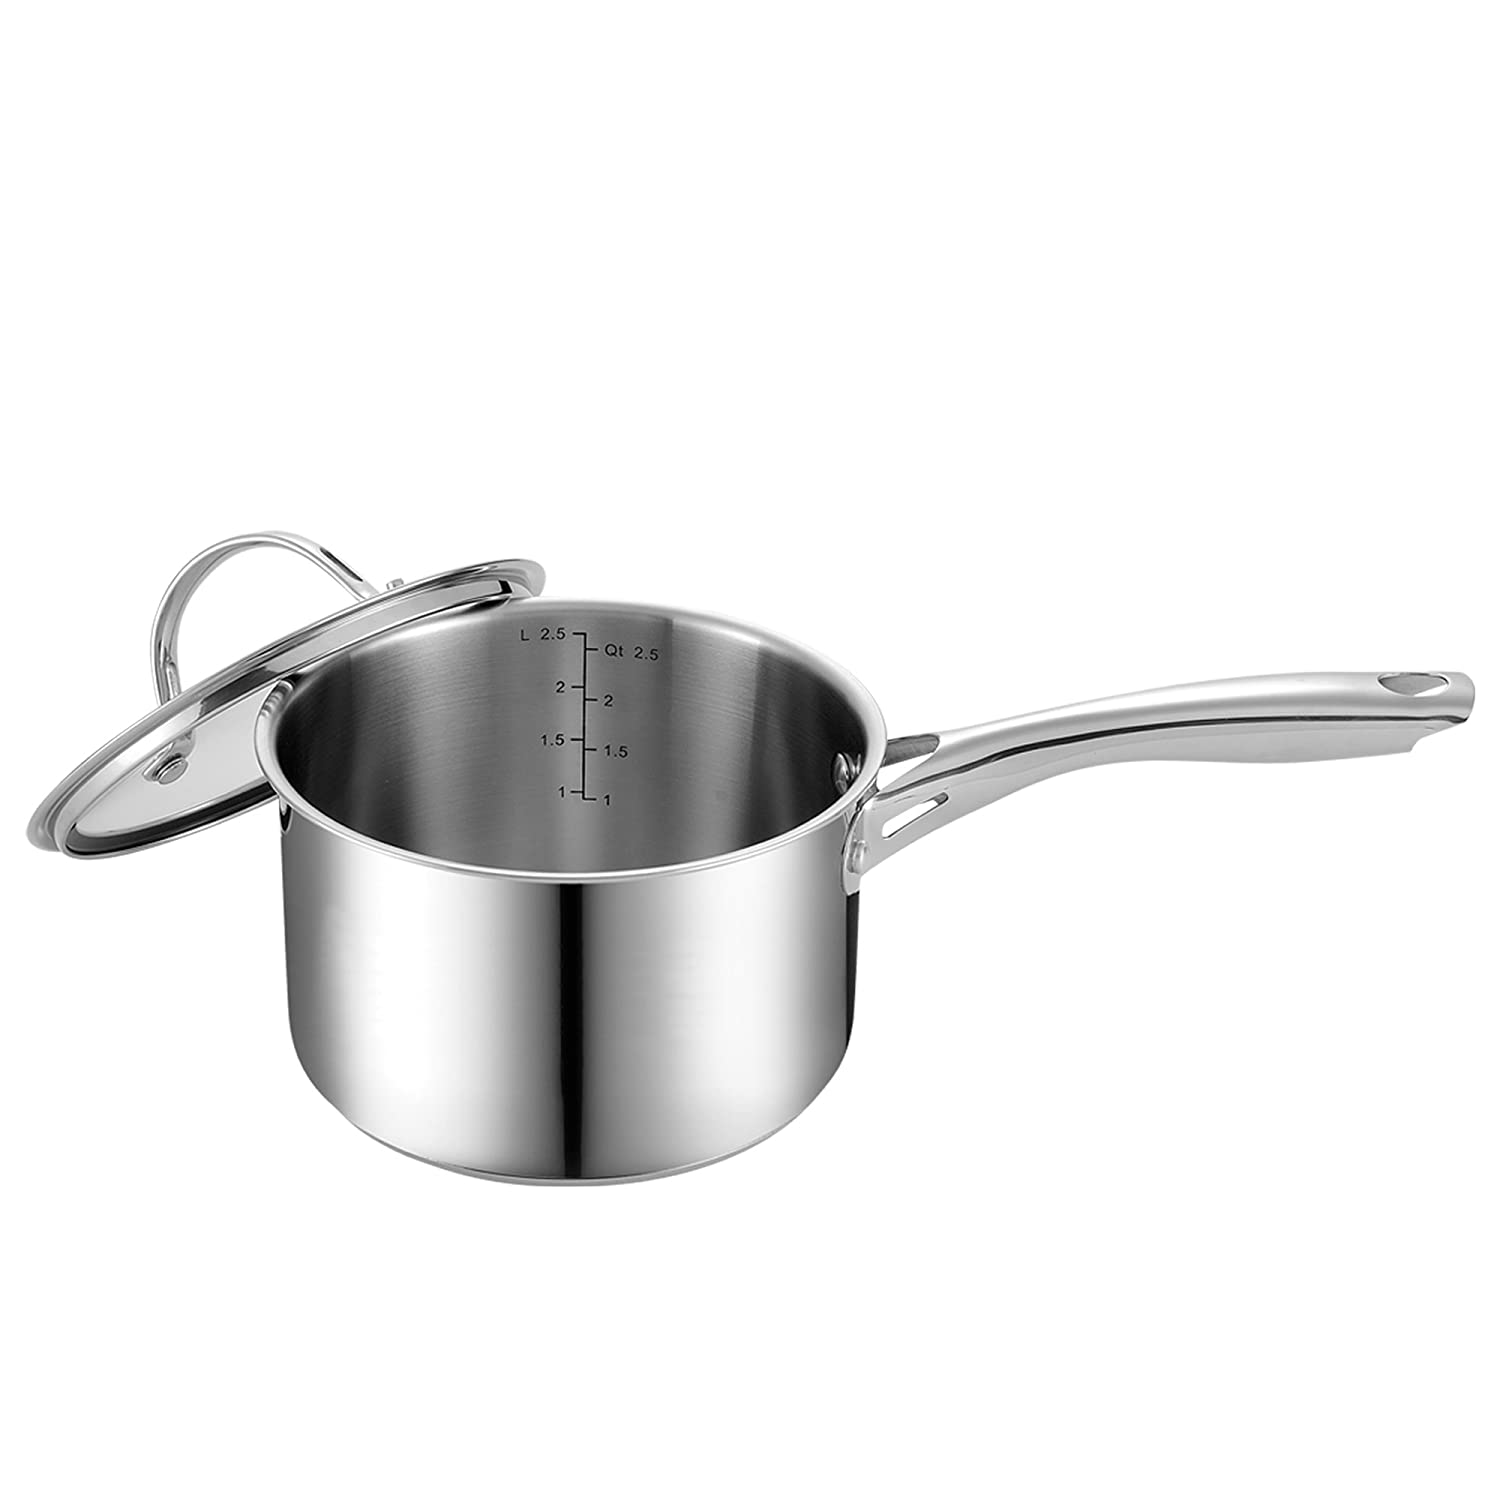 Cooks Standard NC-00349 Stainless Steel Sauce Pan with Cover, 3-Quart